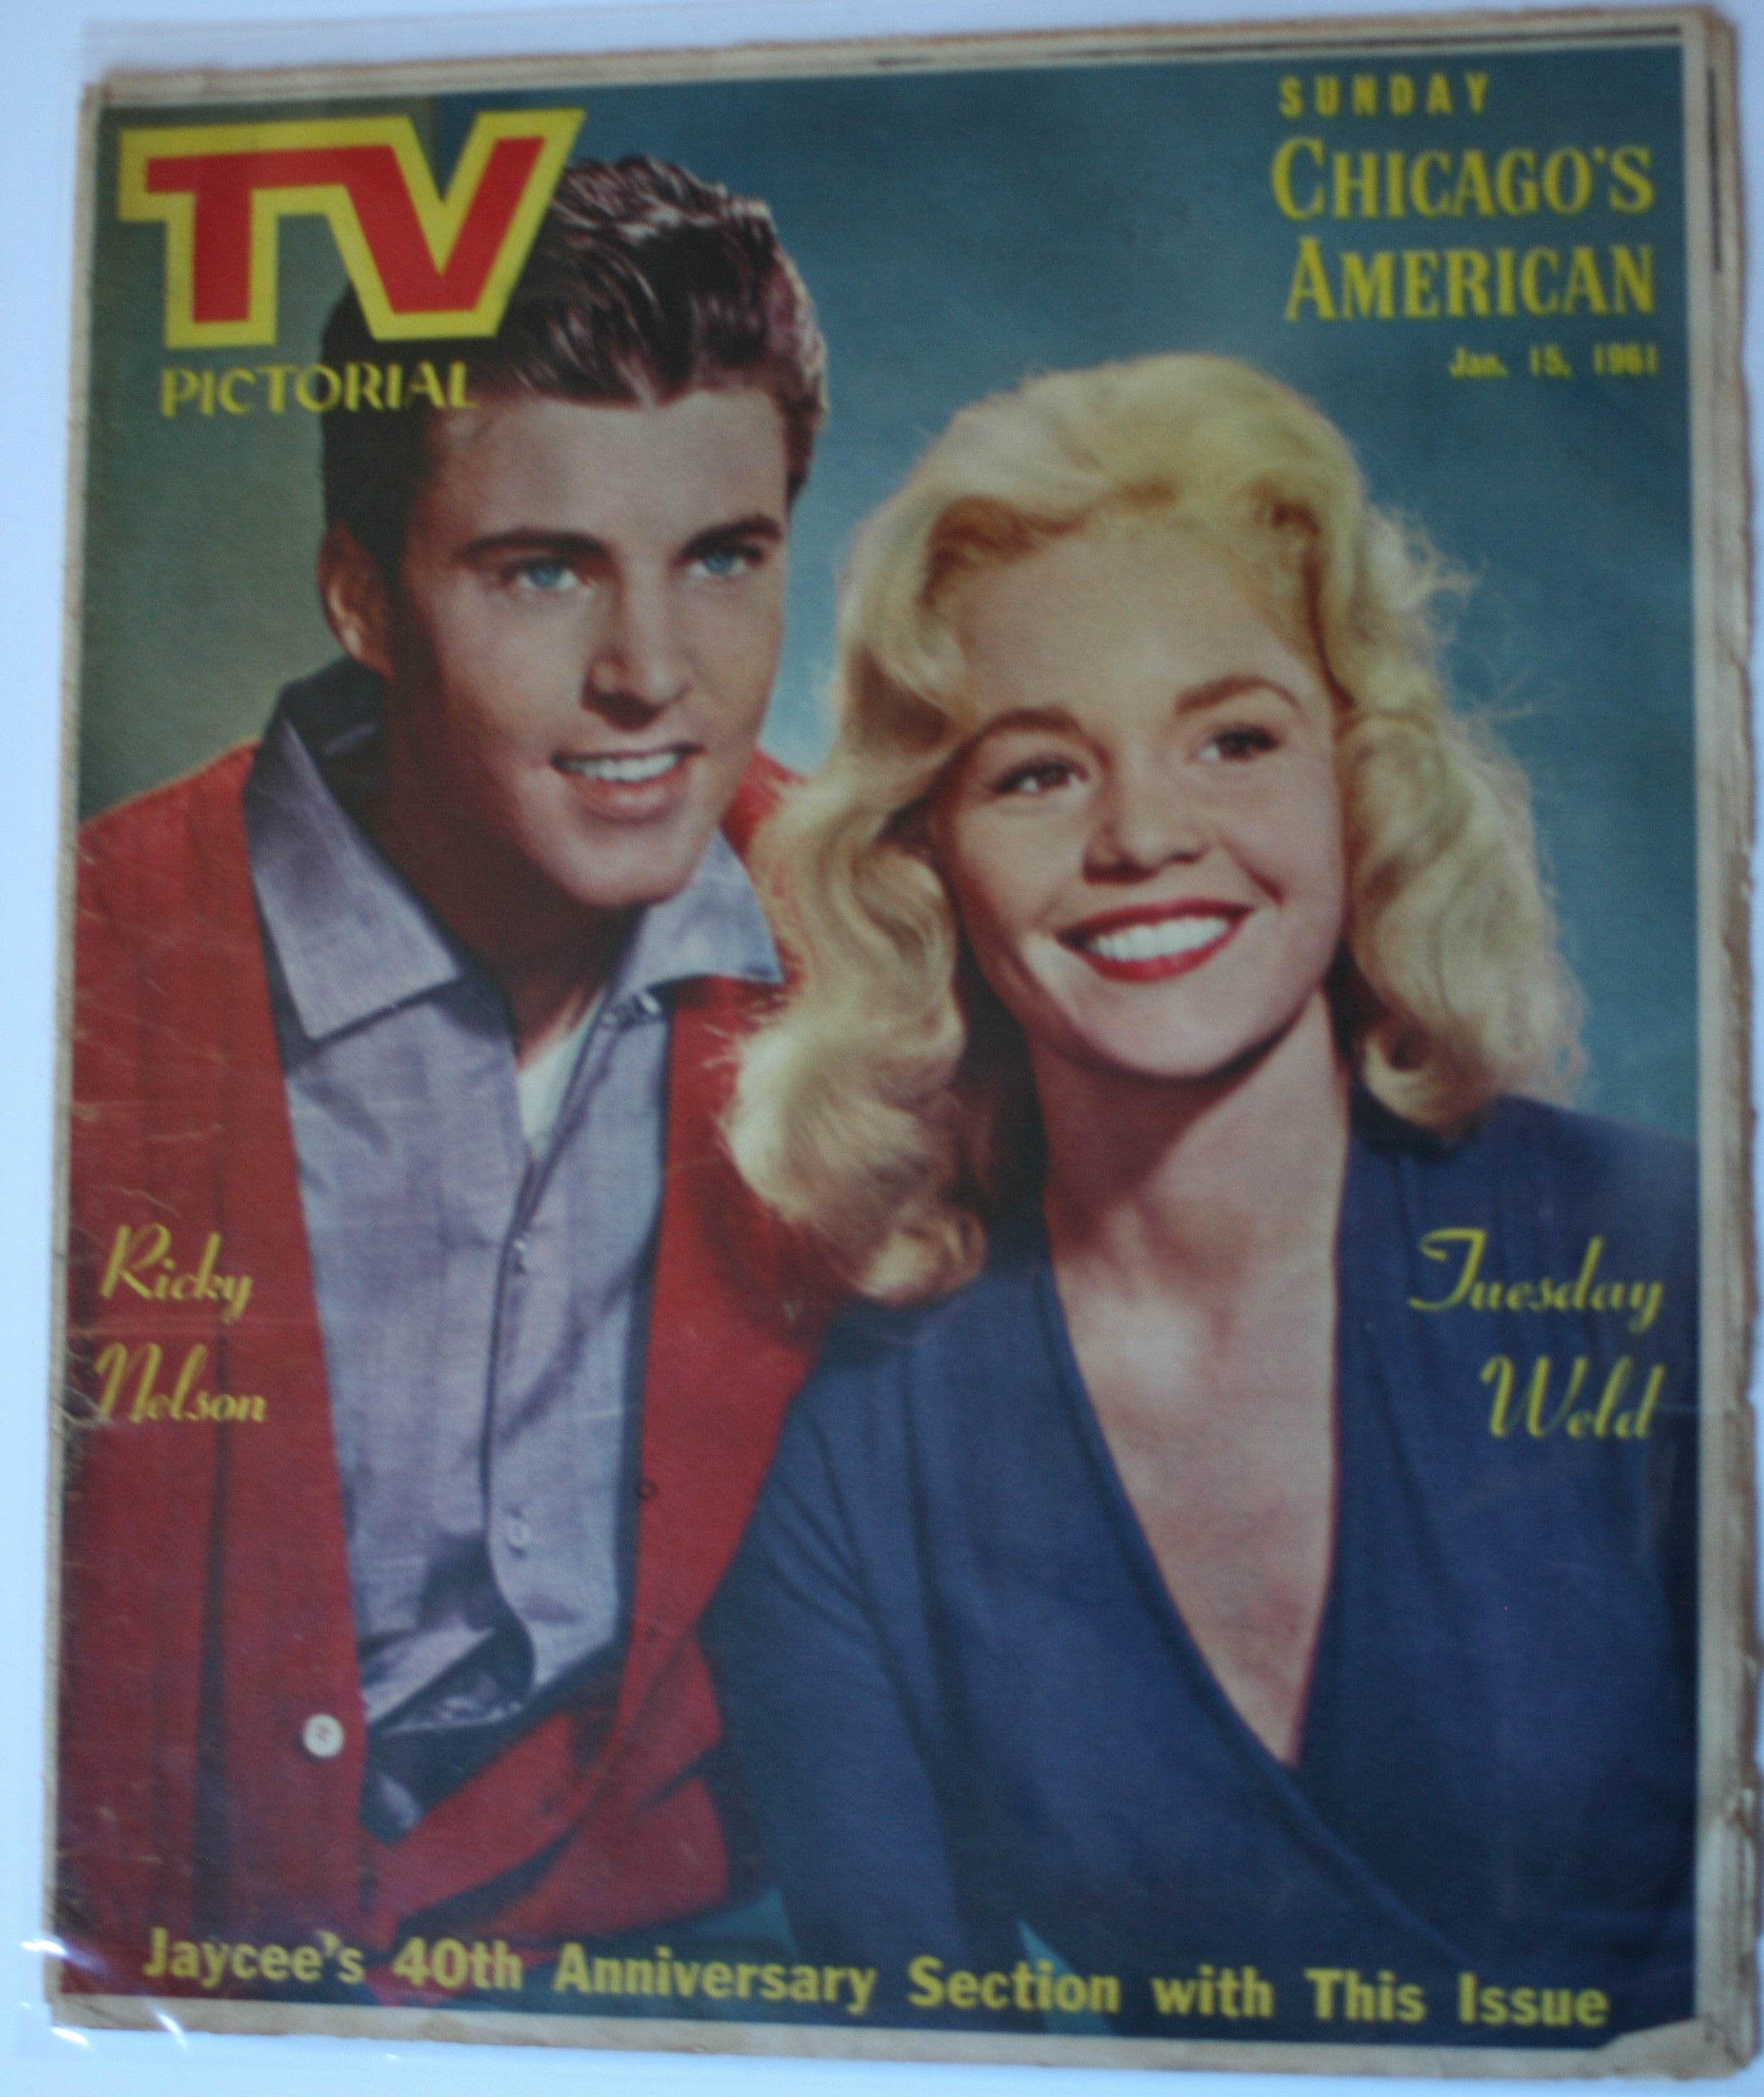 01 15 1961 TV Ricky Nelson - Tuesday Weld